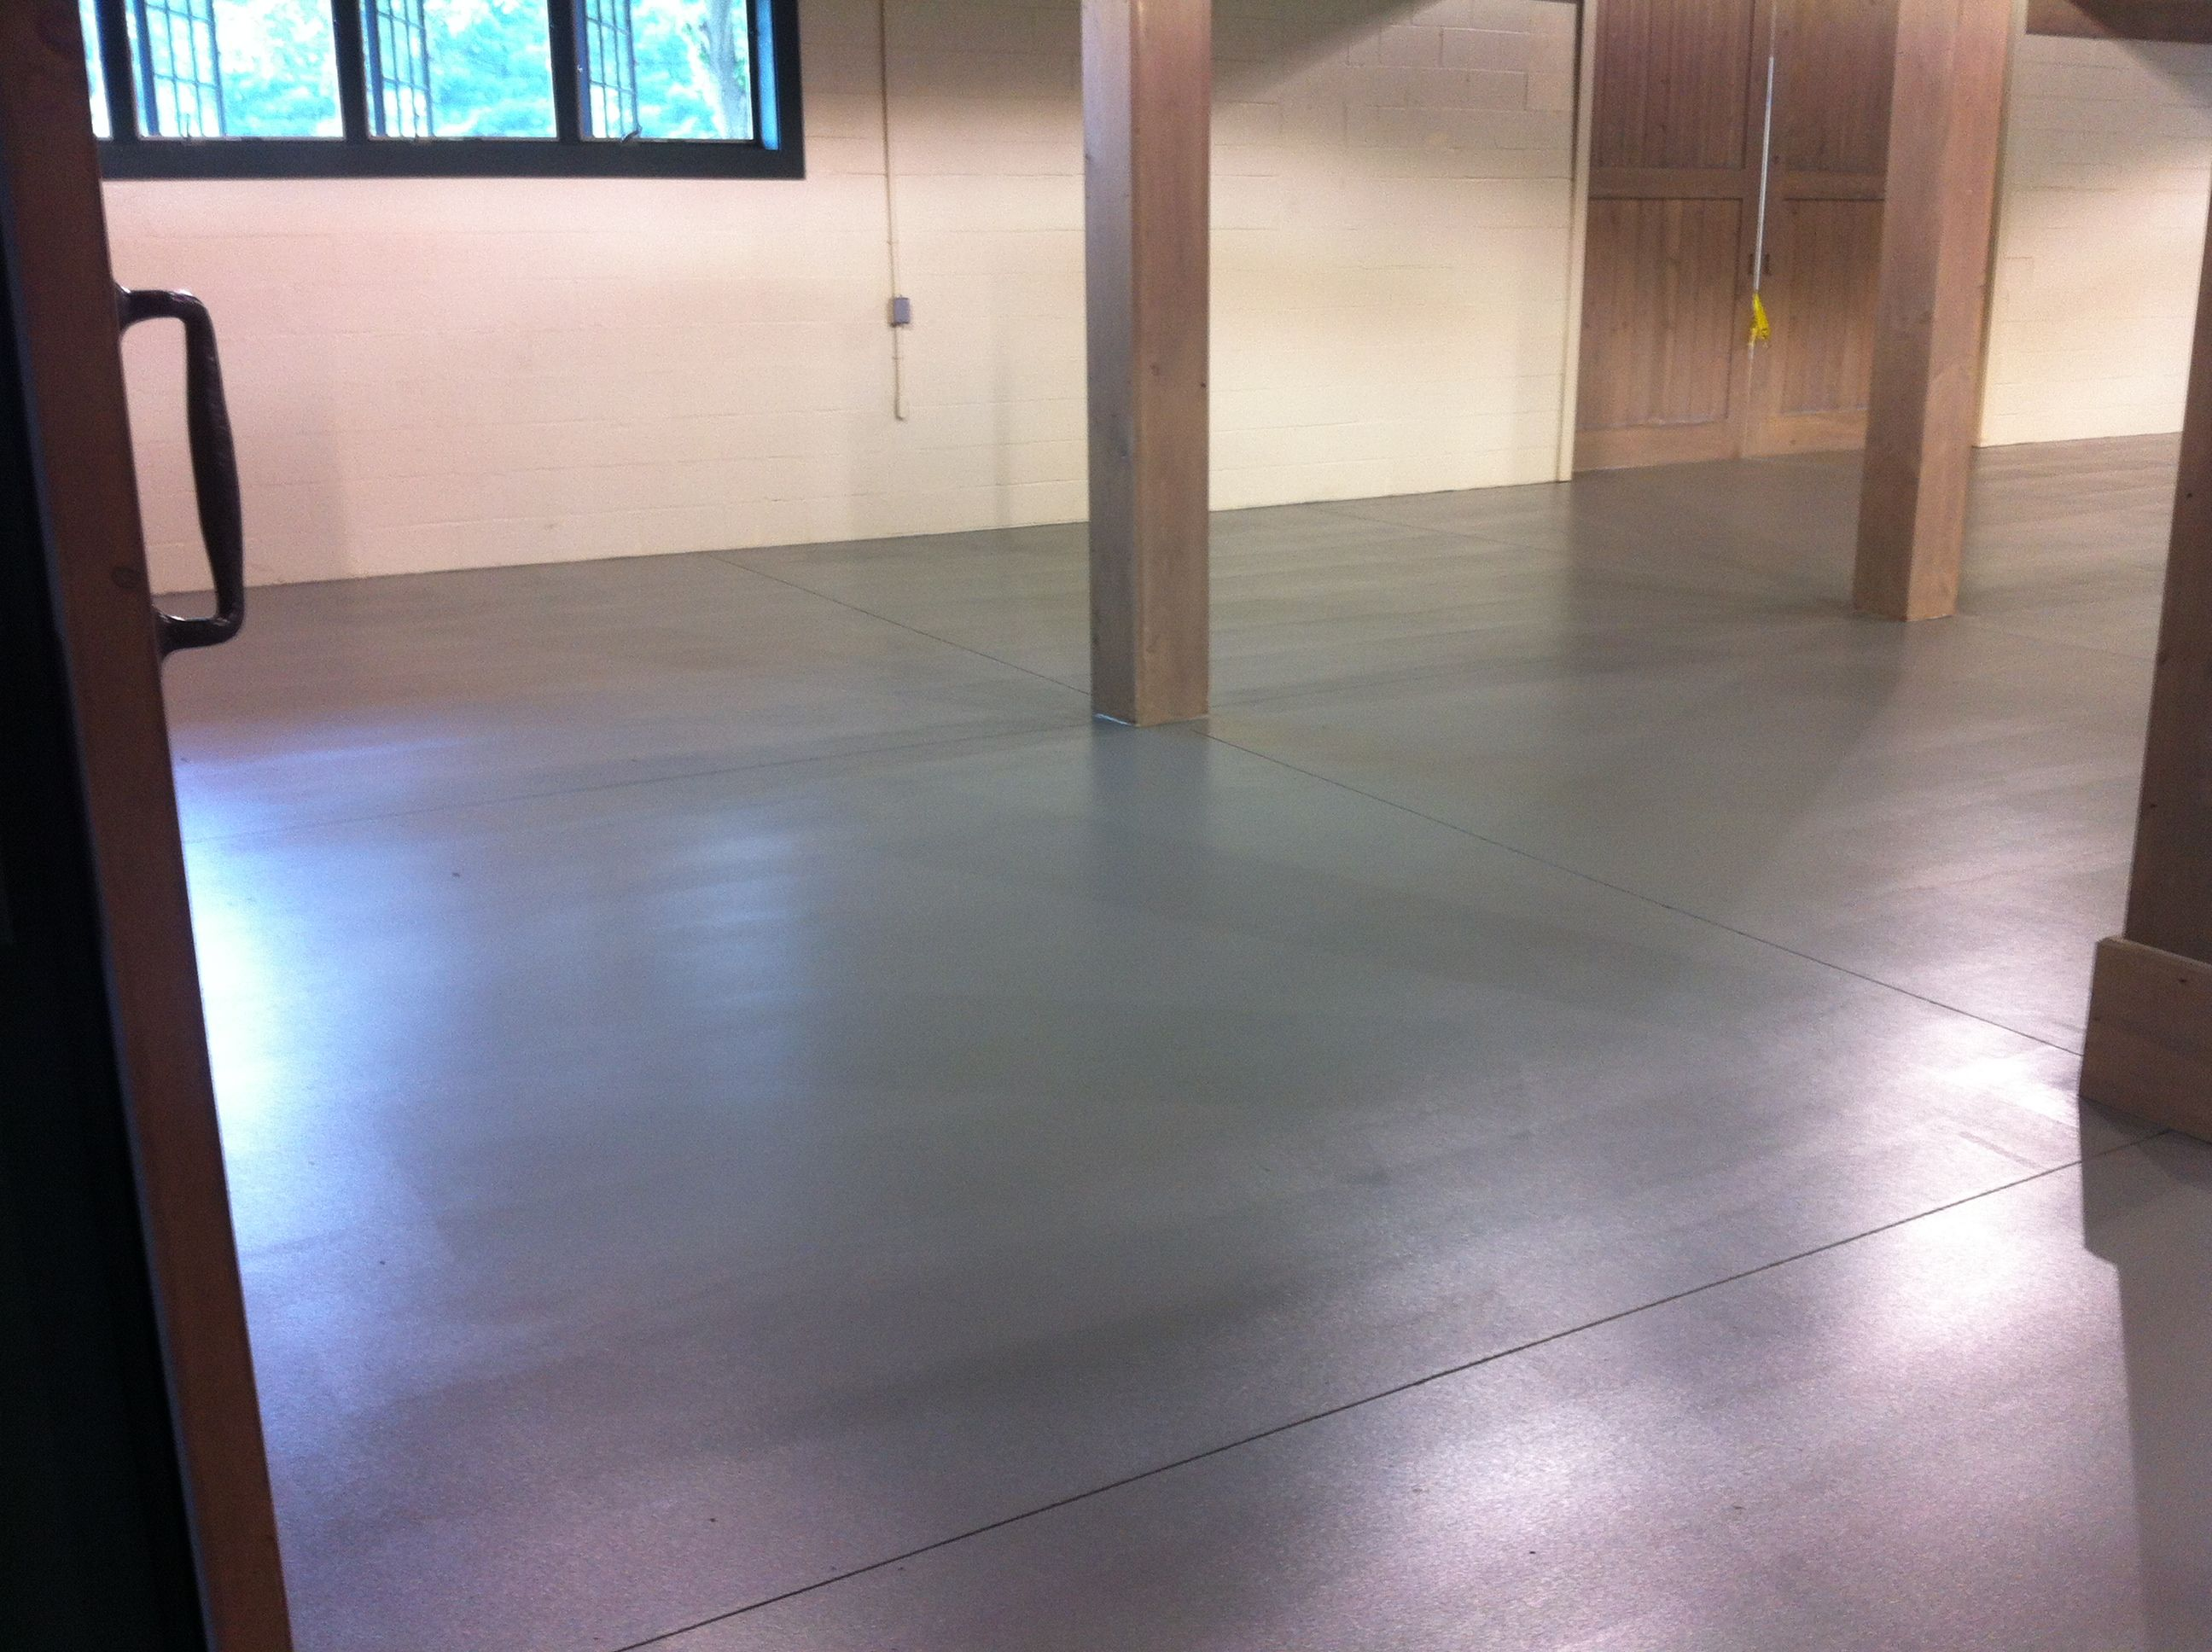 Epoxy floor  matte finish. Epoxy floor  matte finish   Basement   Pinterest   Epoxy